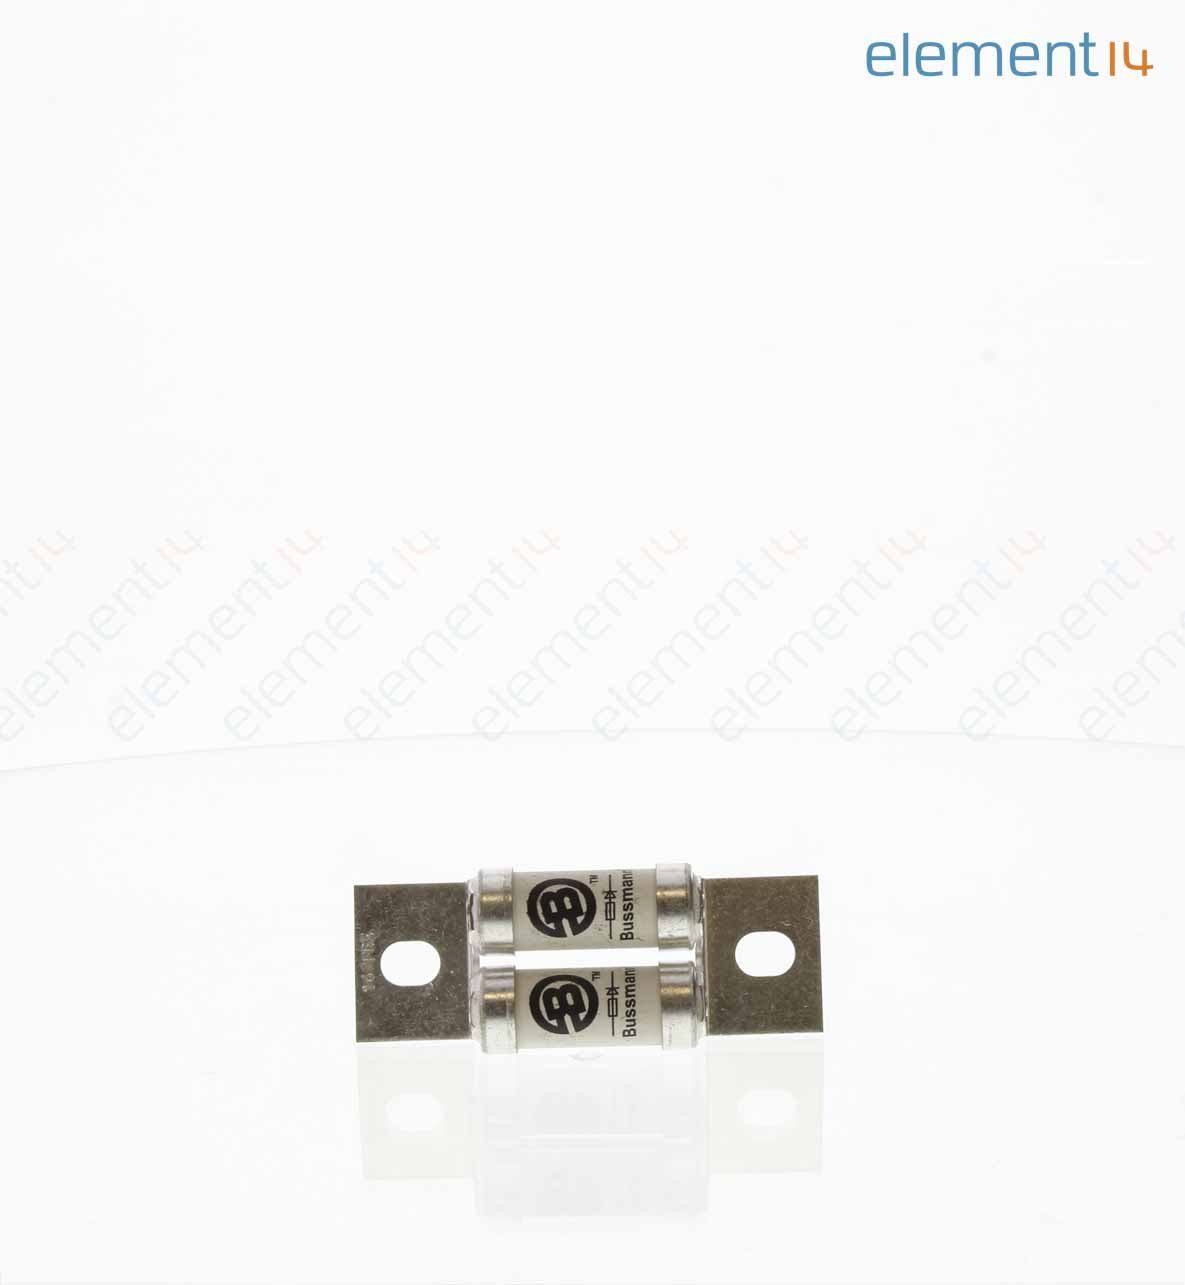 160fee Eaton Bussmann Series Fuse Semiconductor Fee Holder Distribution Box Add To Compare